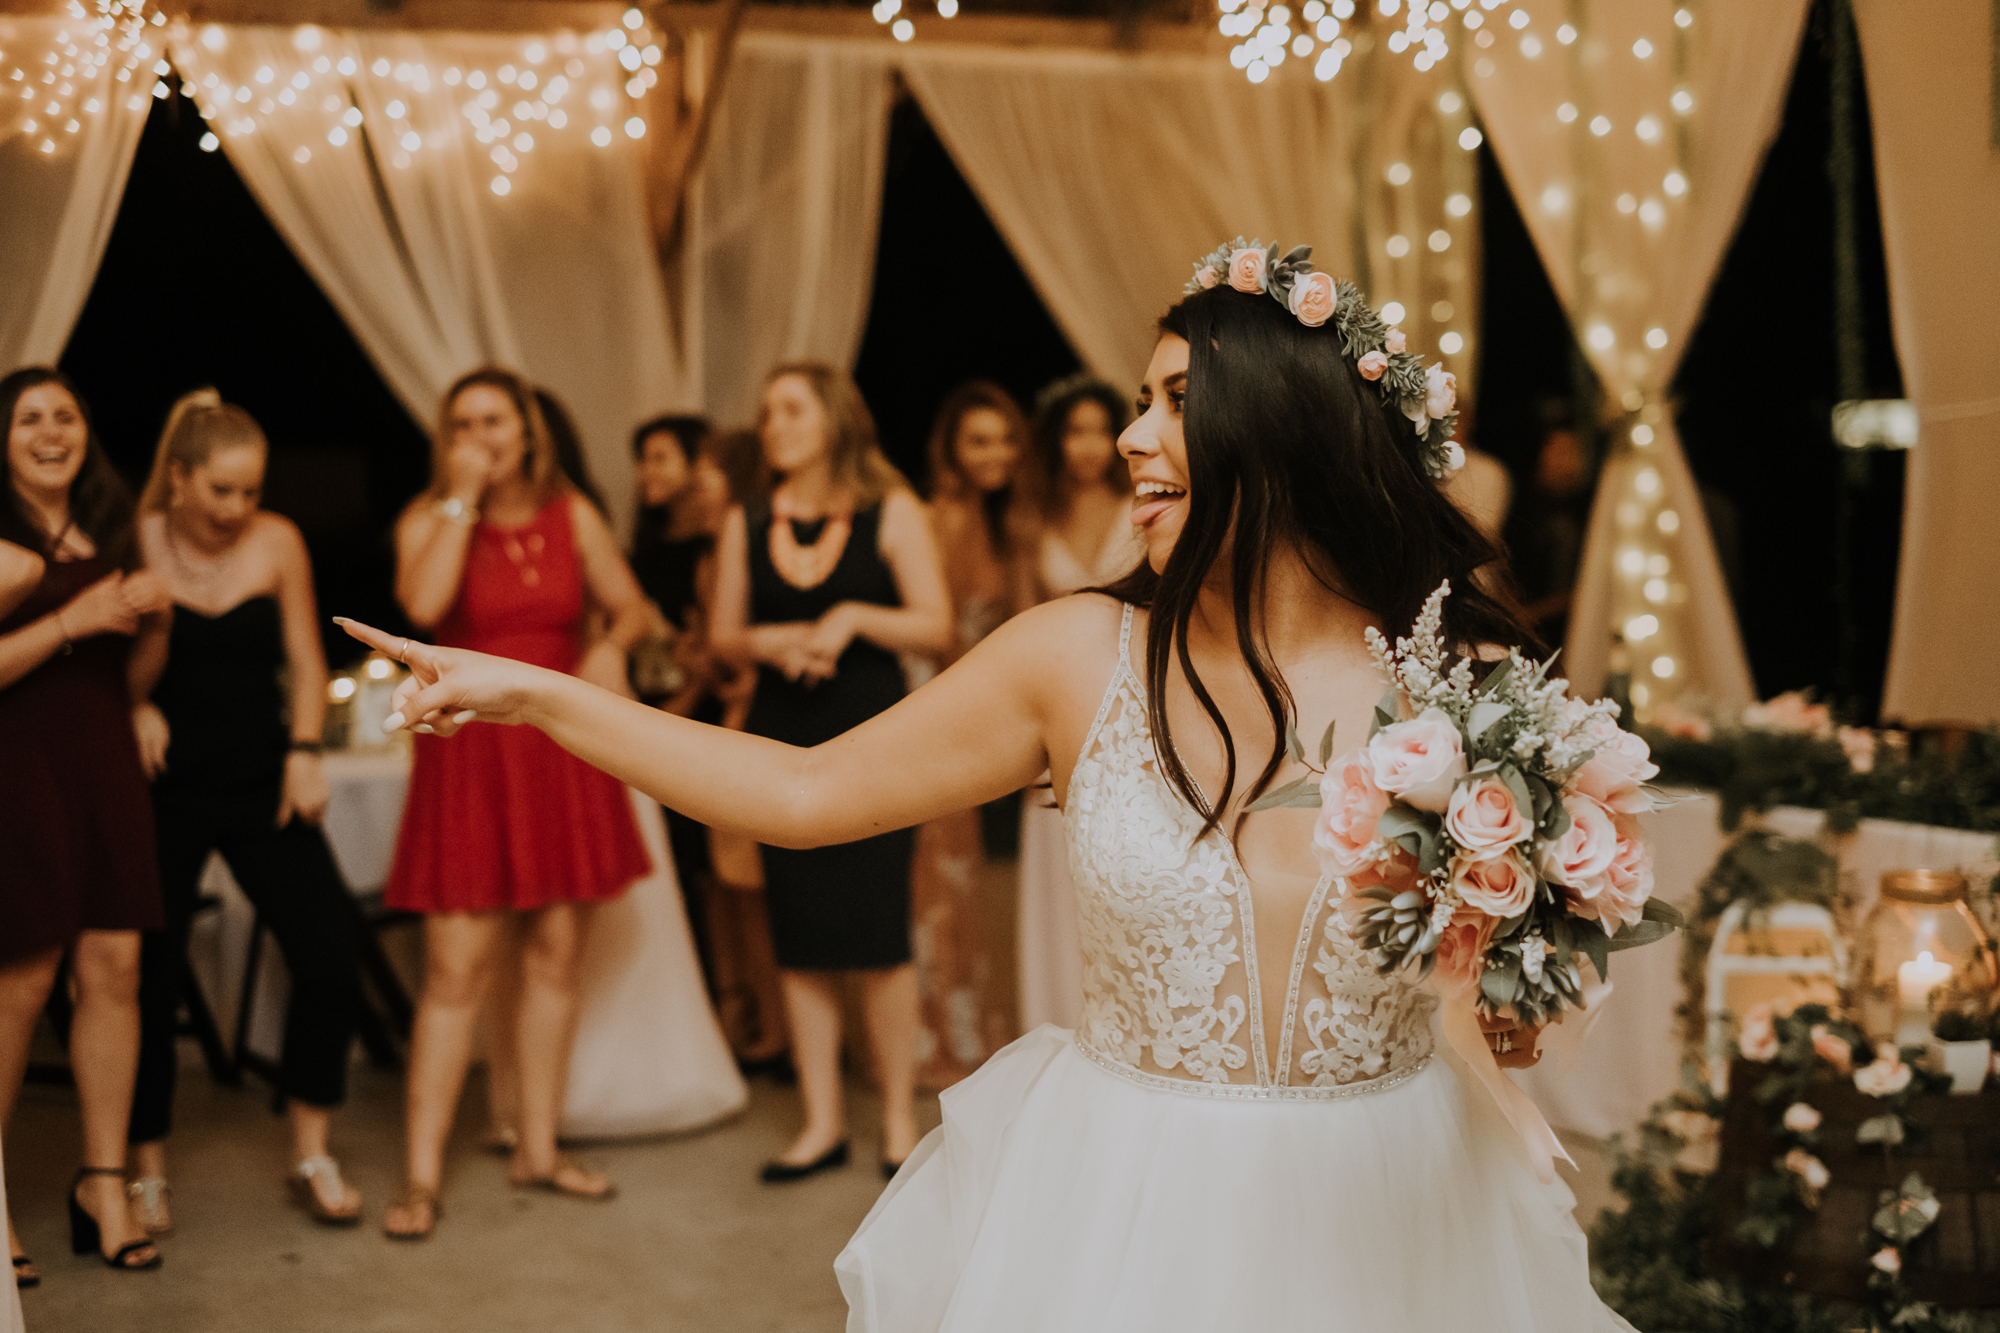 bouquet toss | boho bouquet toss | boho wedding reception